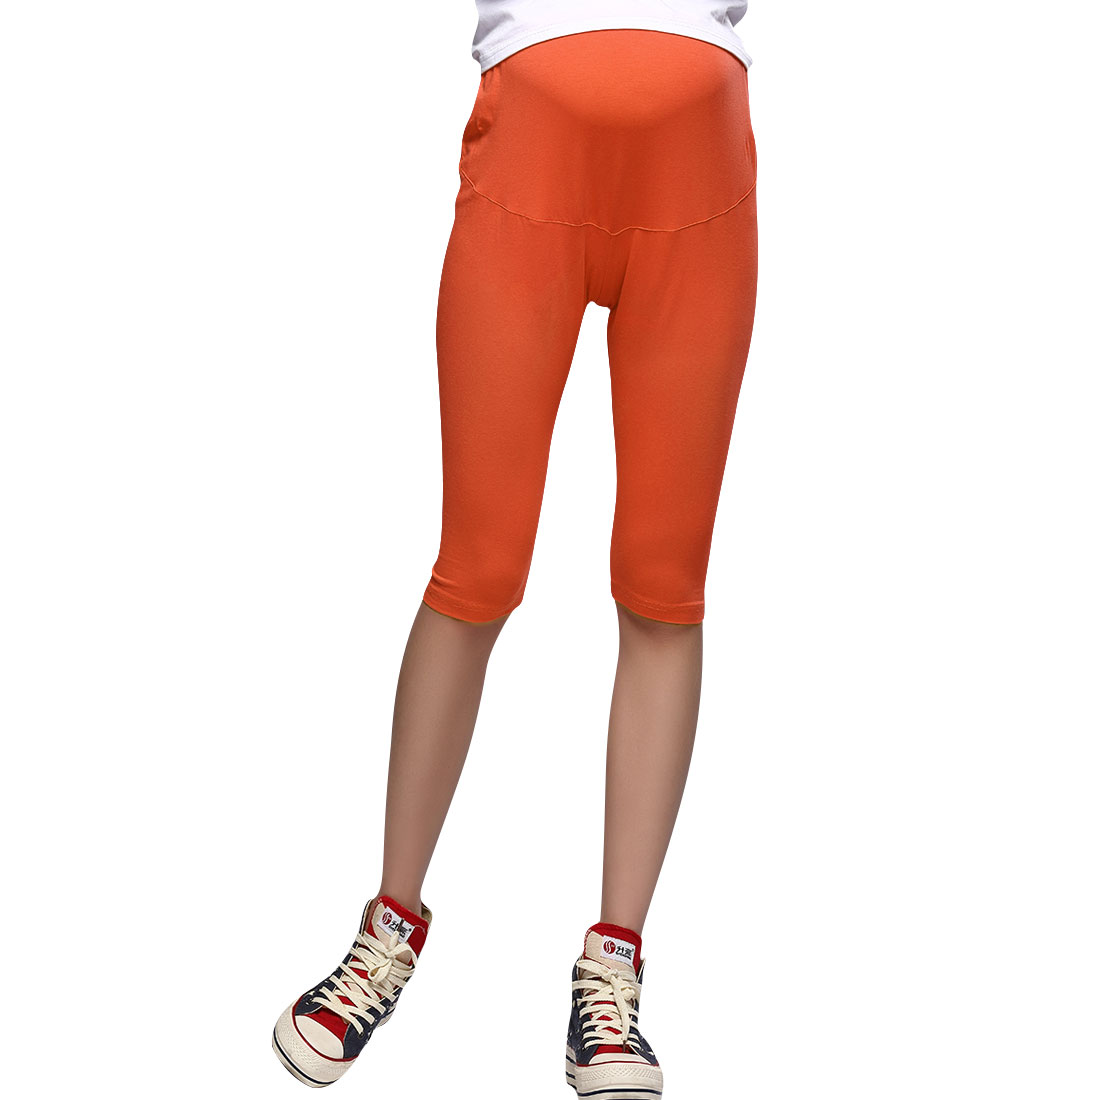 Pregnancy Orange Stretchy Form-fitting Footless Tight Leggings XS